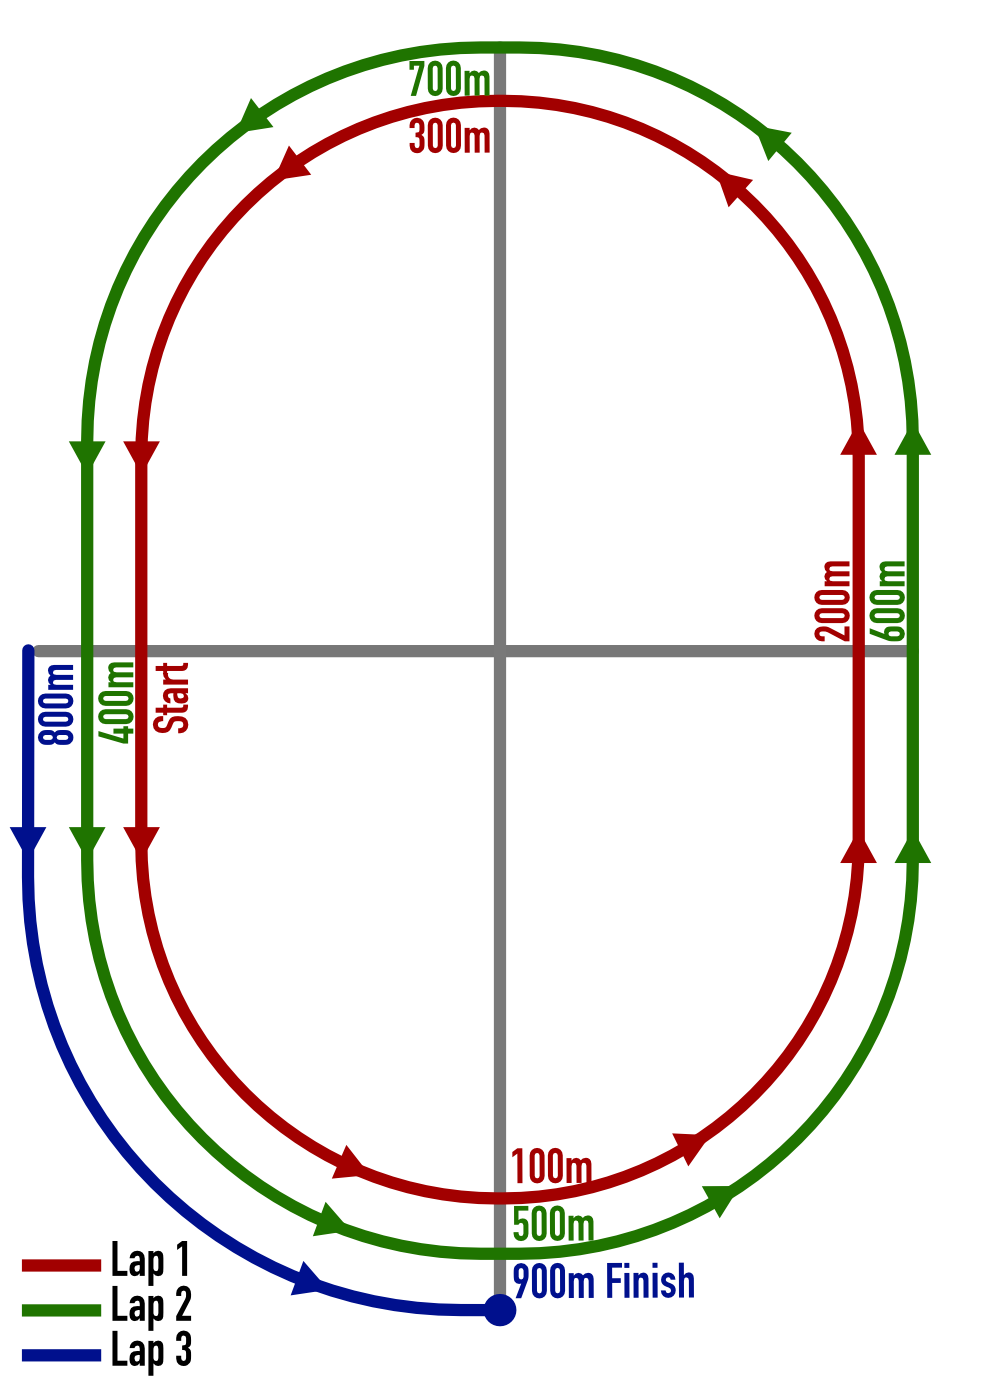 Diagram of a 400 meter track with the positions listed above marked on it.  100 meters is at each quarter, 400 meters each lap, 900 in total